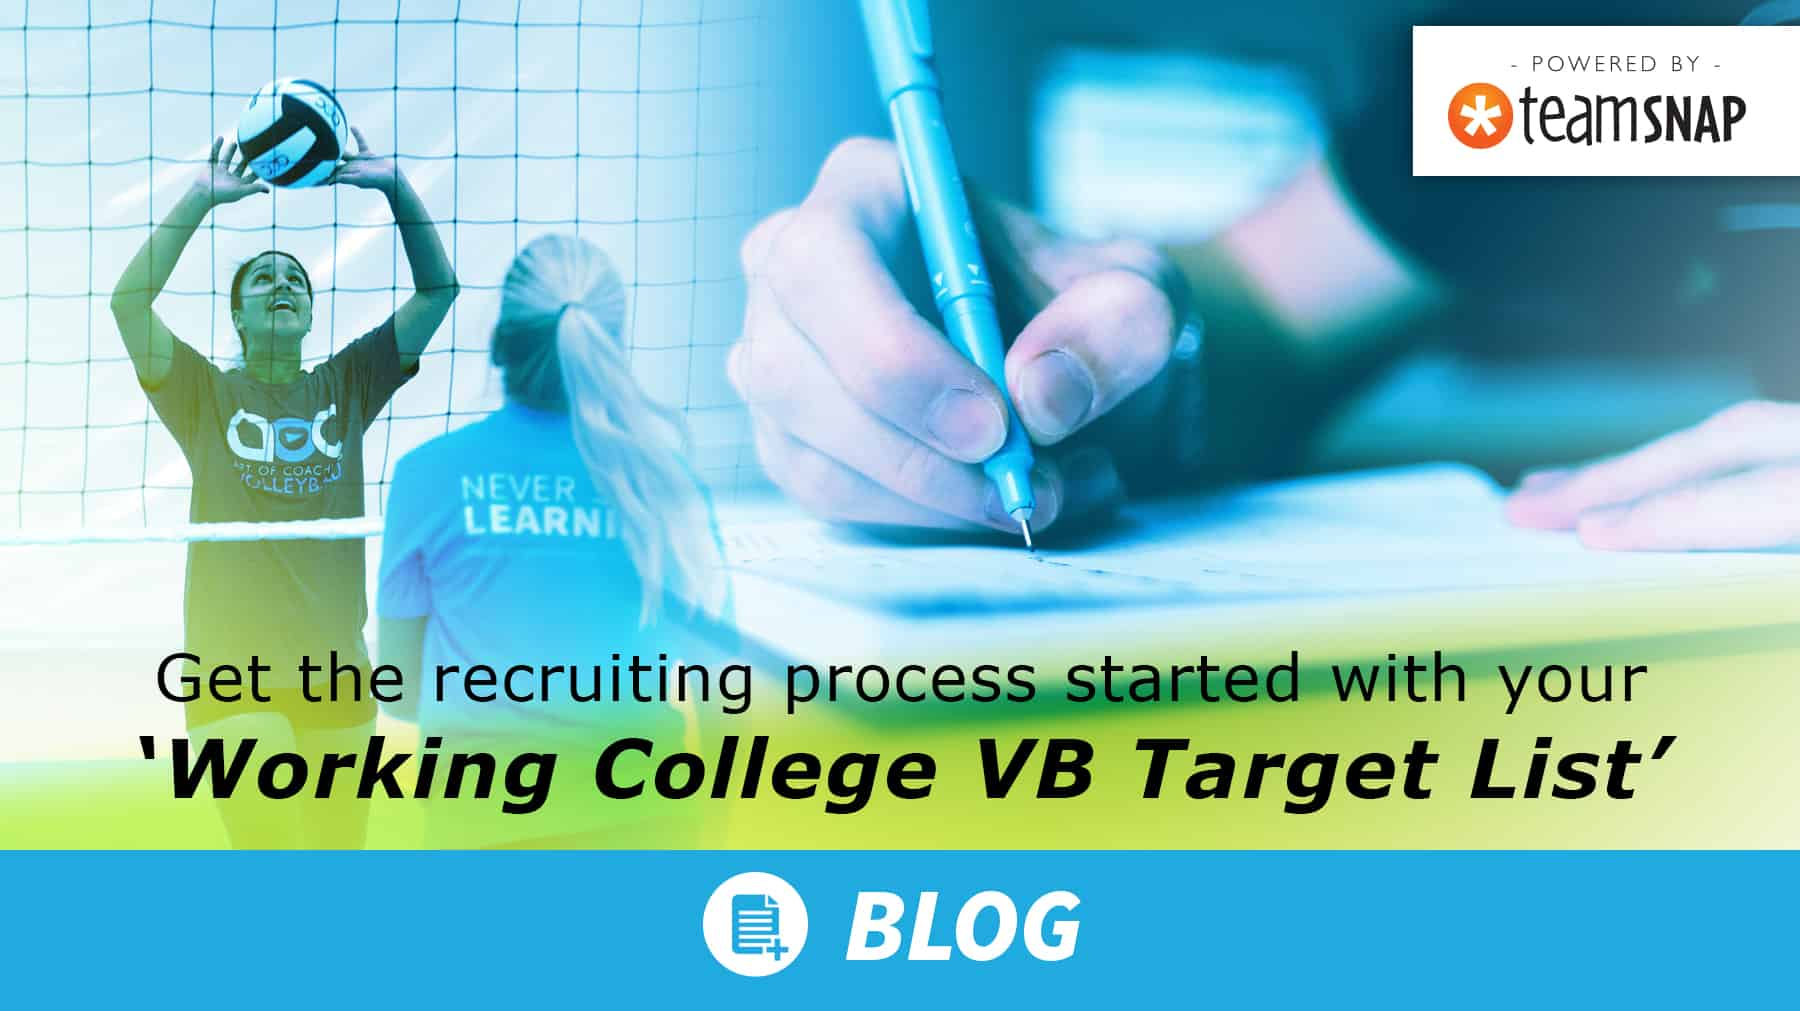 Get the recruiting process started with your Working College VB Target List